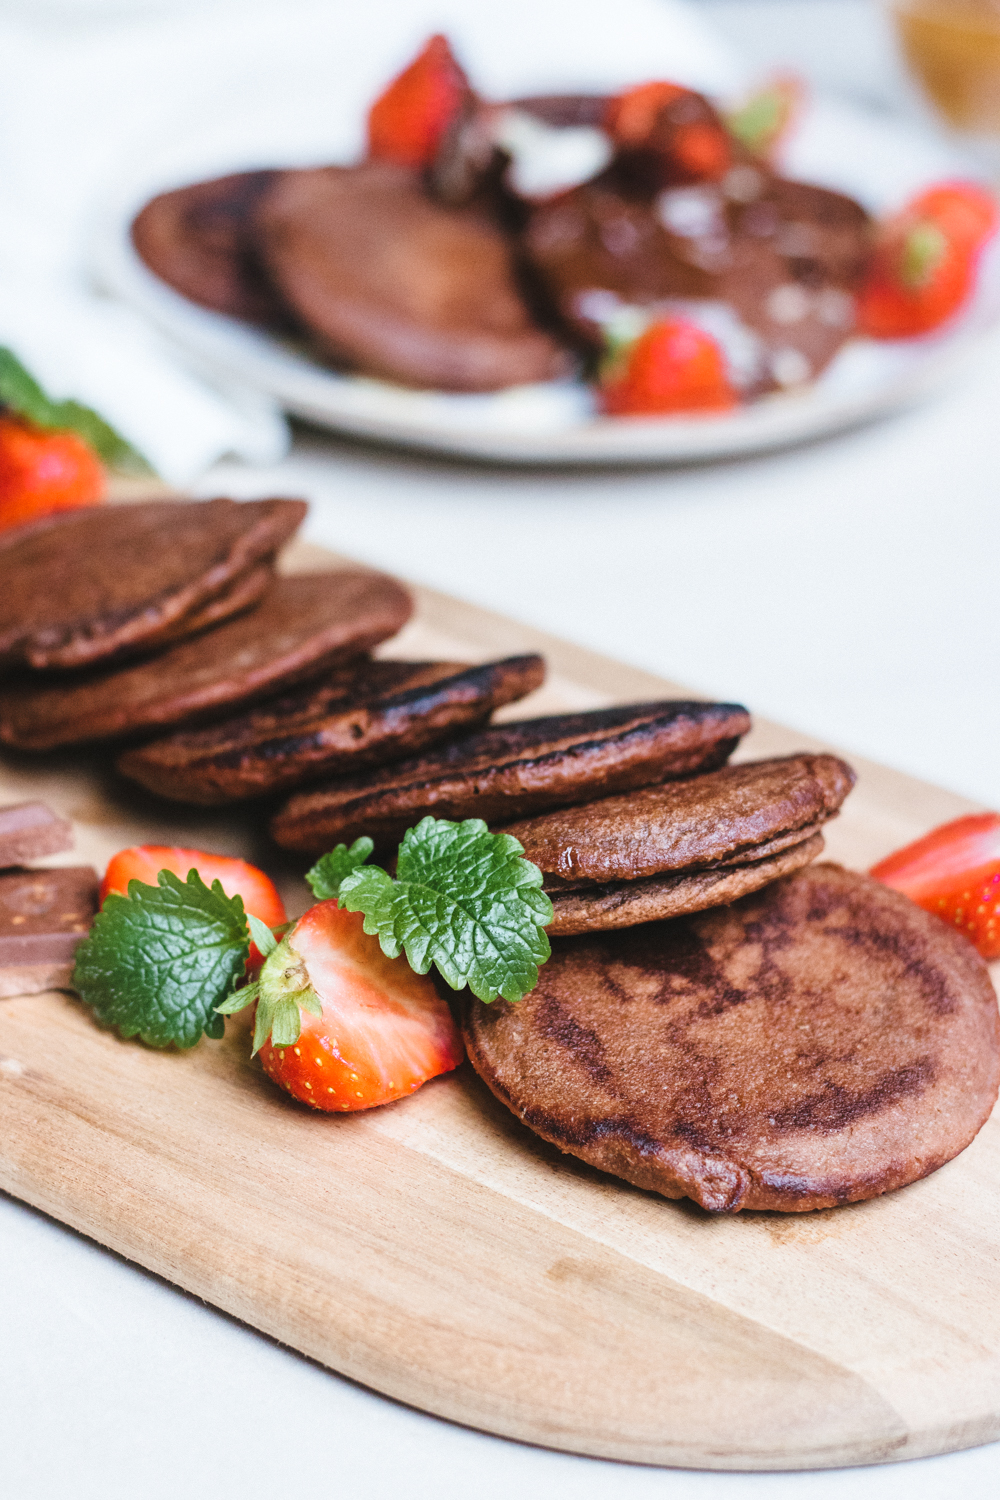 GF Vegan Chocolate Pancakes